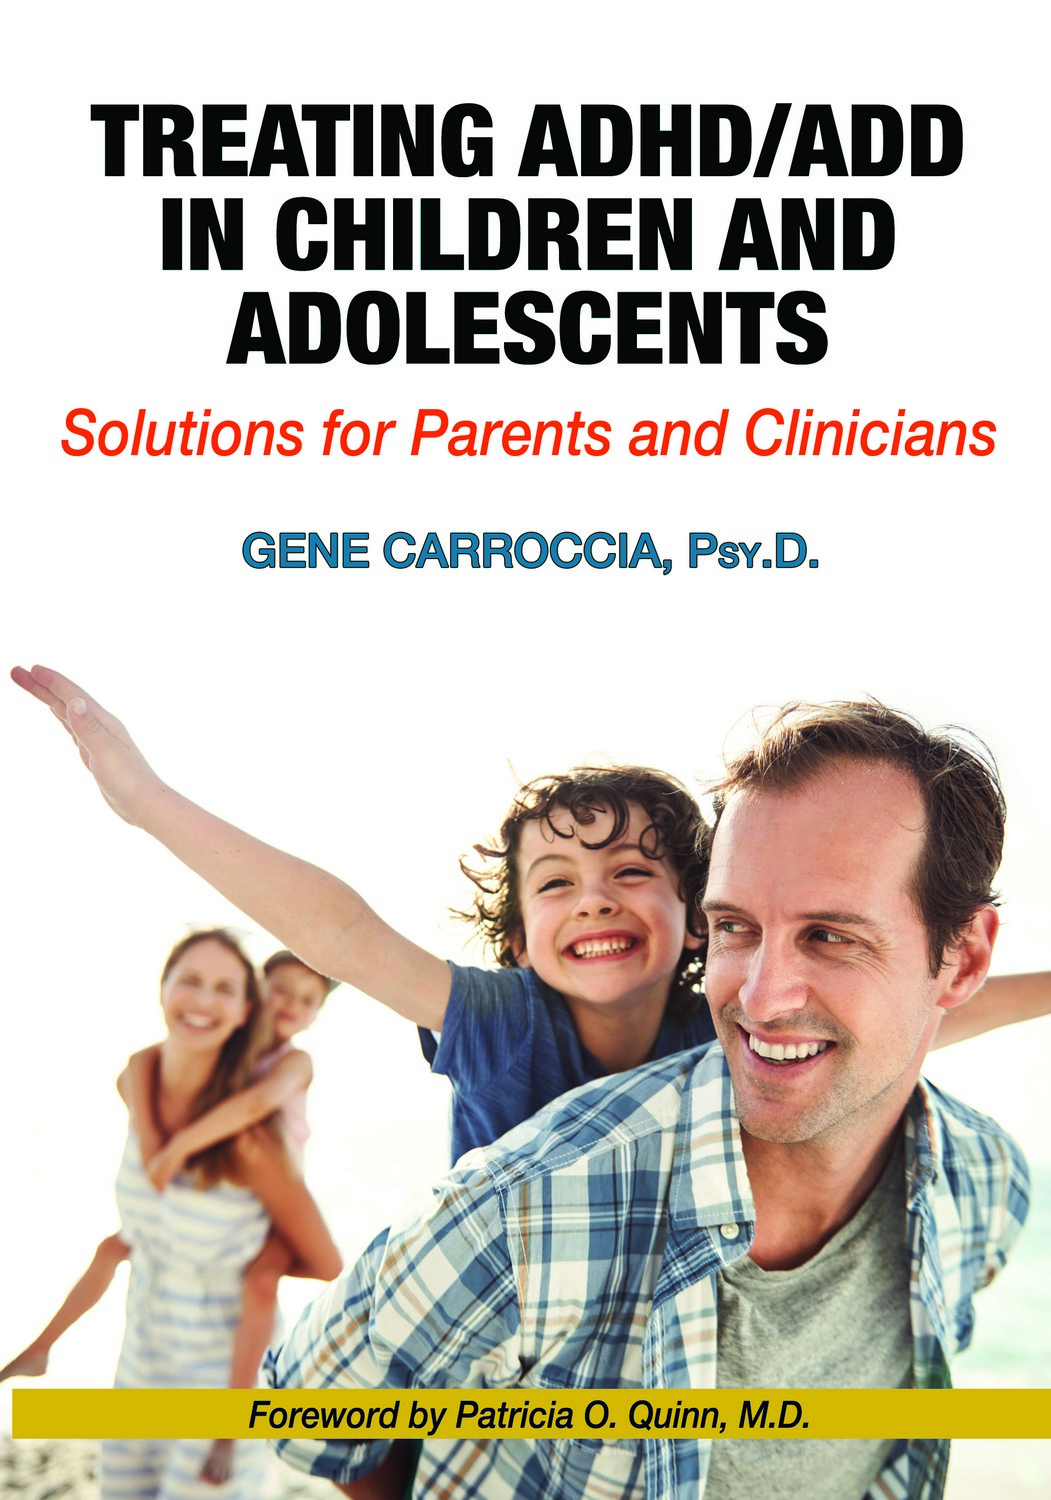 Carroccia_Treating-ADHD_ADD_Front-Book-Cover.jpg